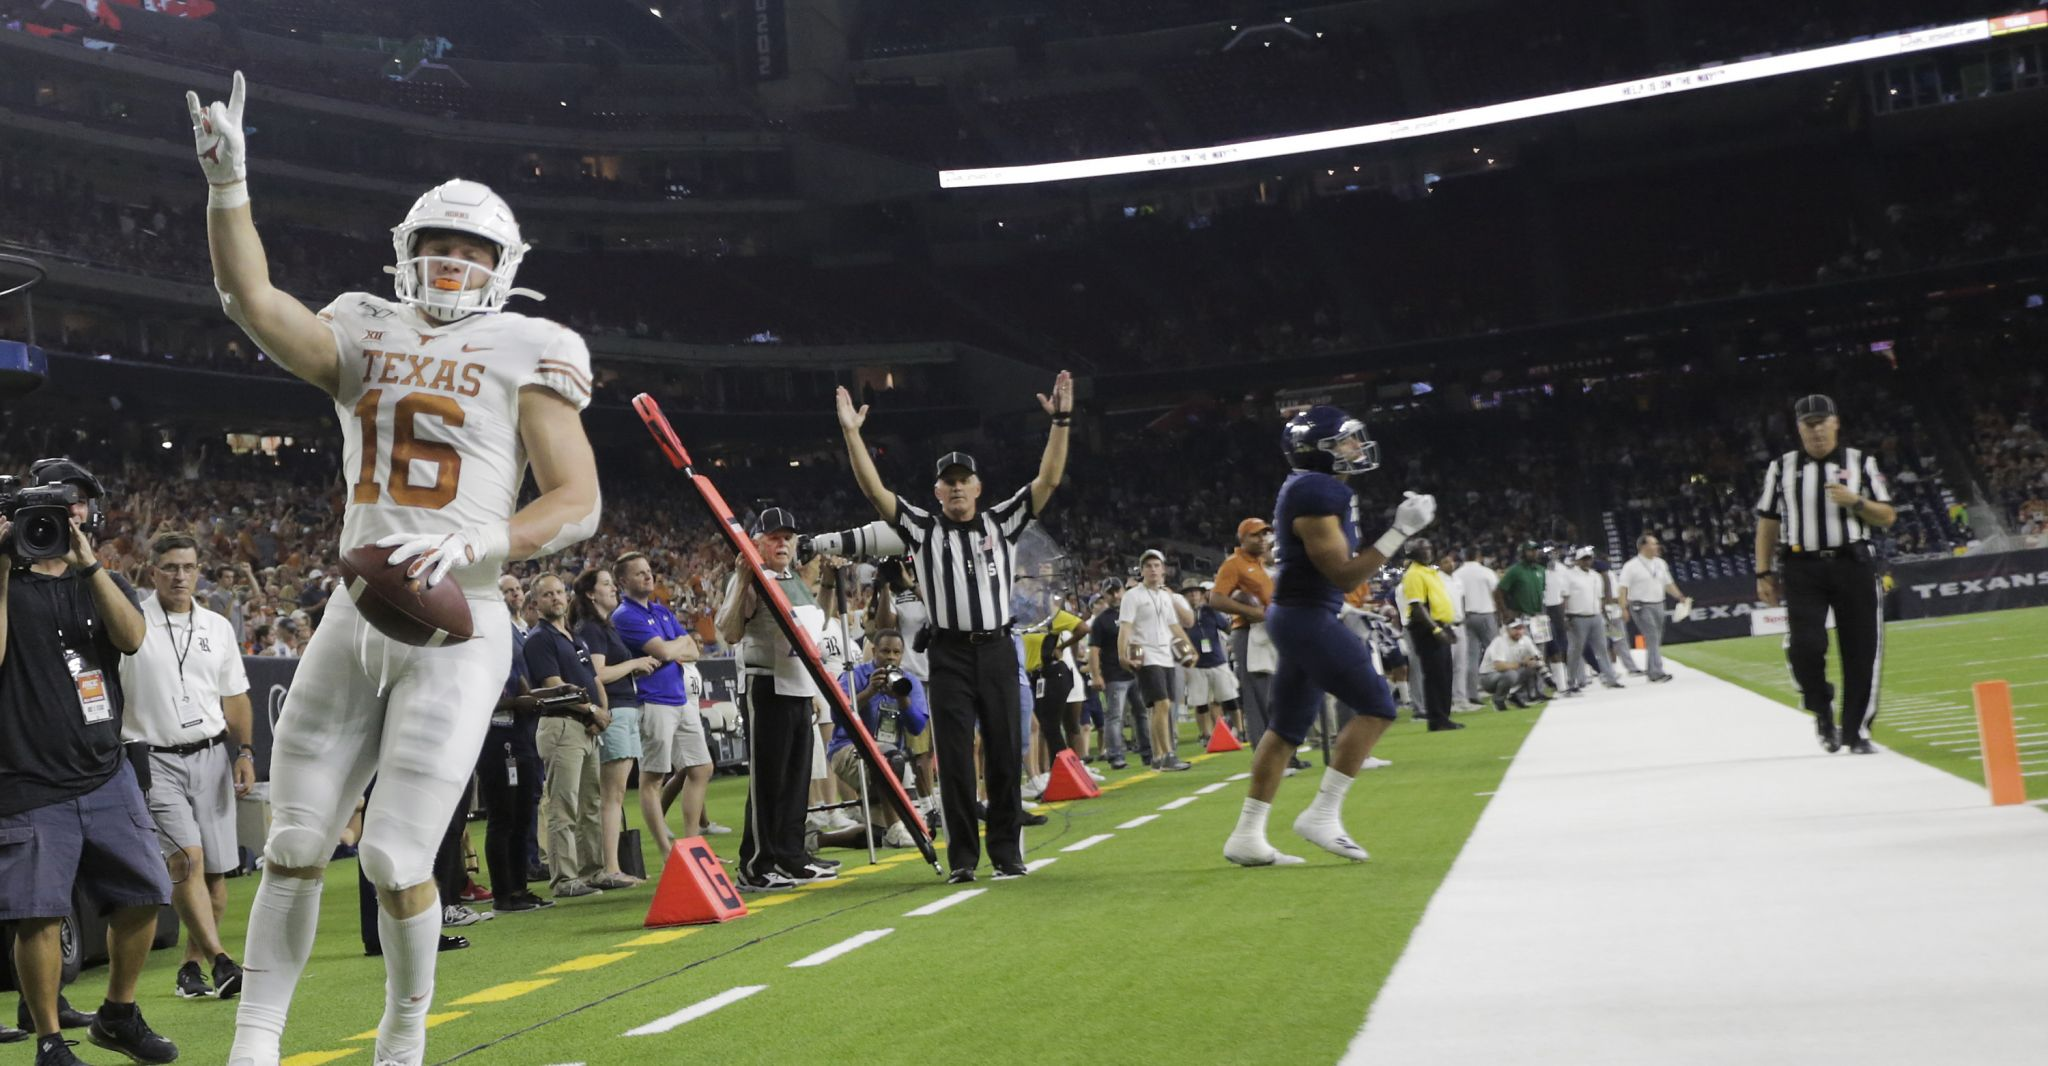 UT routs Rice, turns attention to Big 12